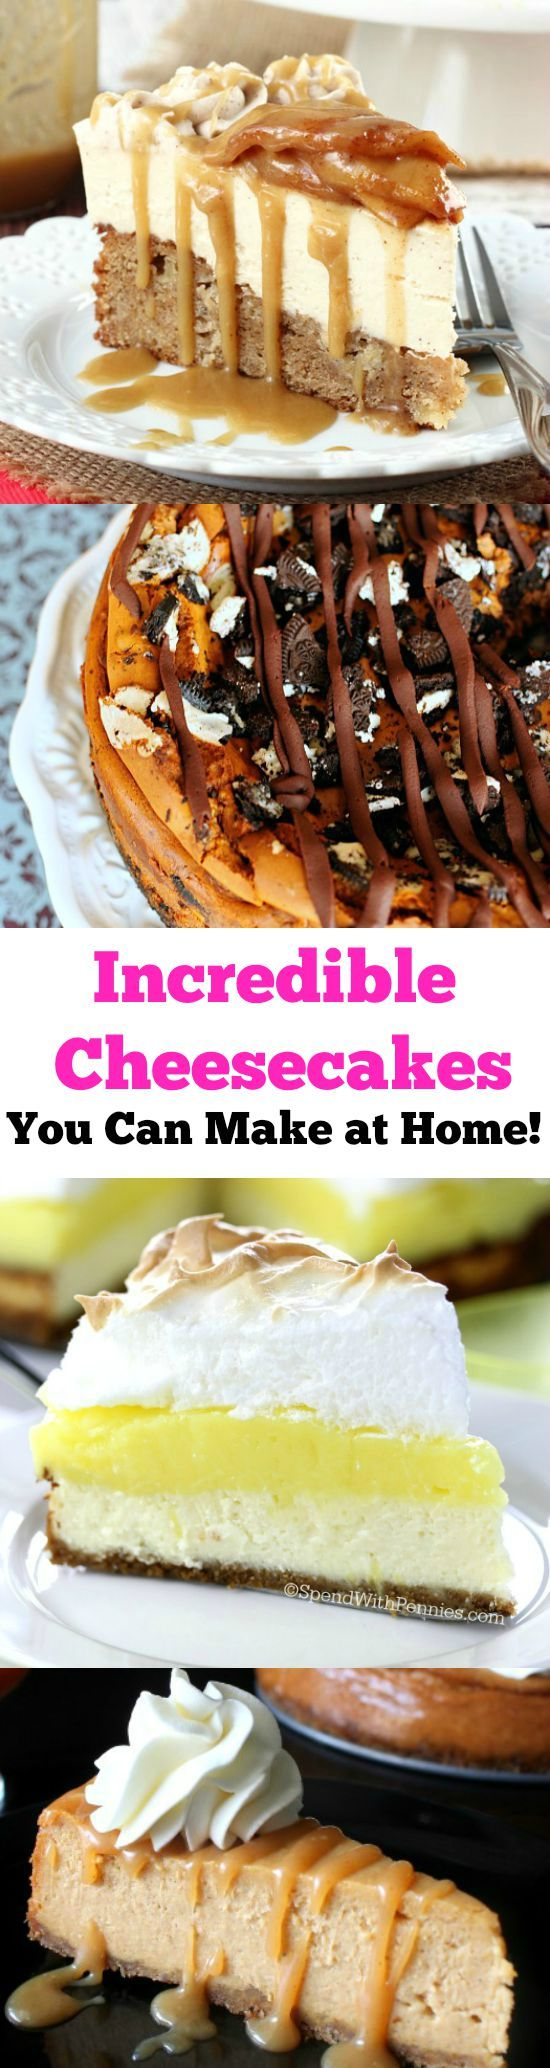 13 Masterpiece Cheesecake Recipes You Can Make at Home! Thanksgiving Desserts Christmas Desserts